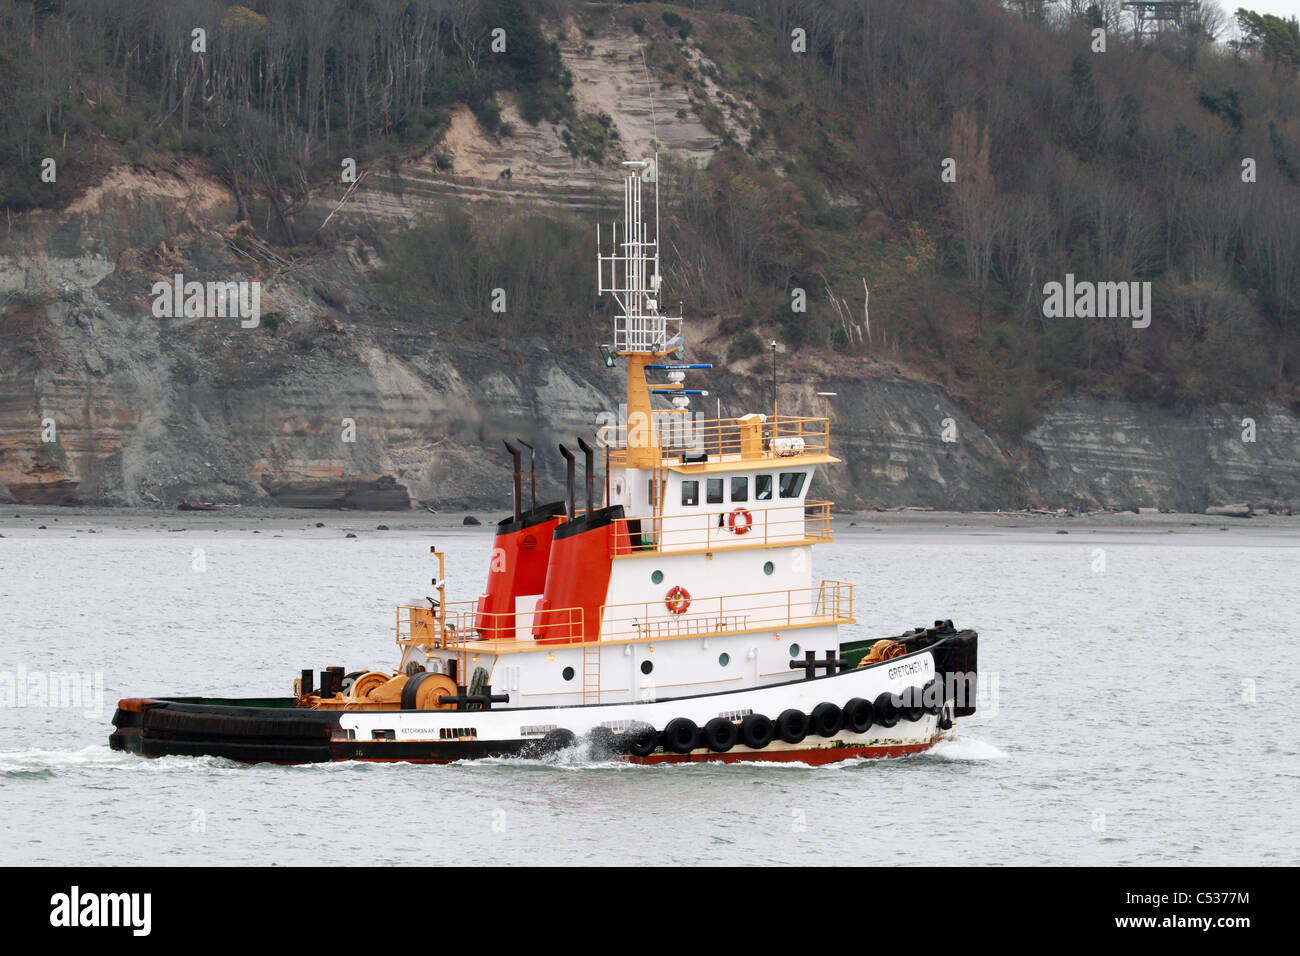 The Gretchen H tug boat traveling Puget Sound inland waterway - Stock Image